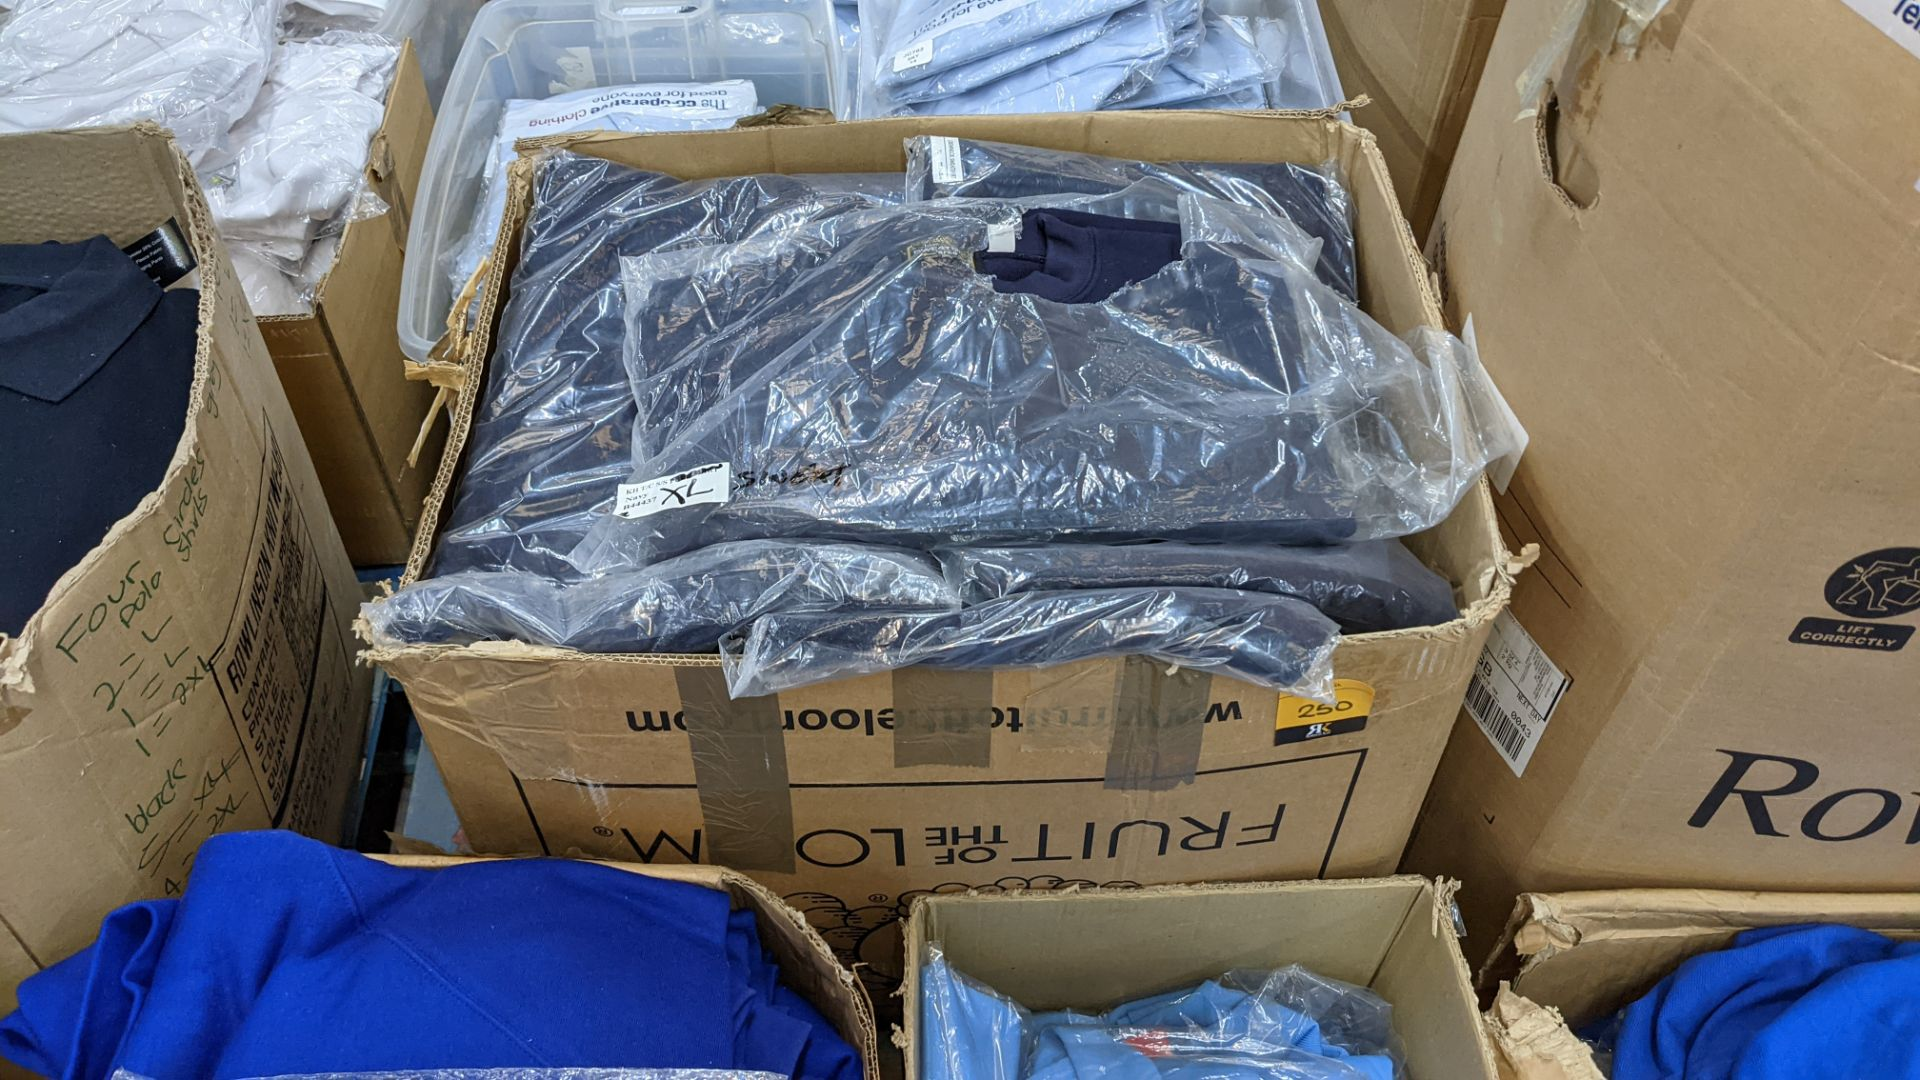 Approx 27 off blue sweatshirts - 1 large box